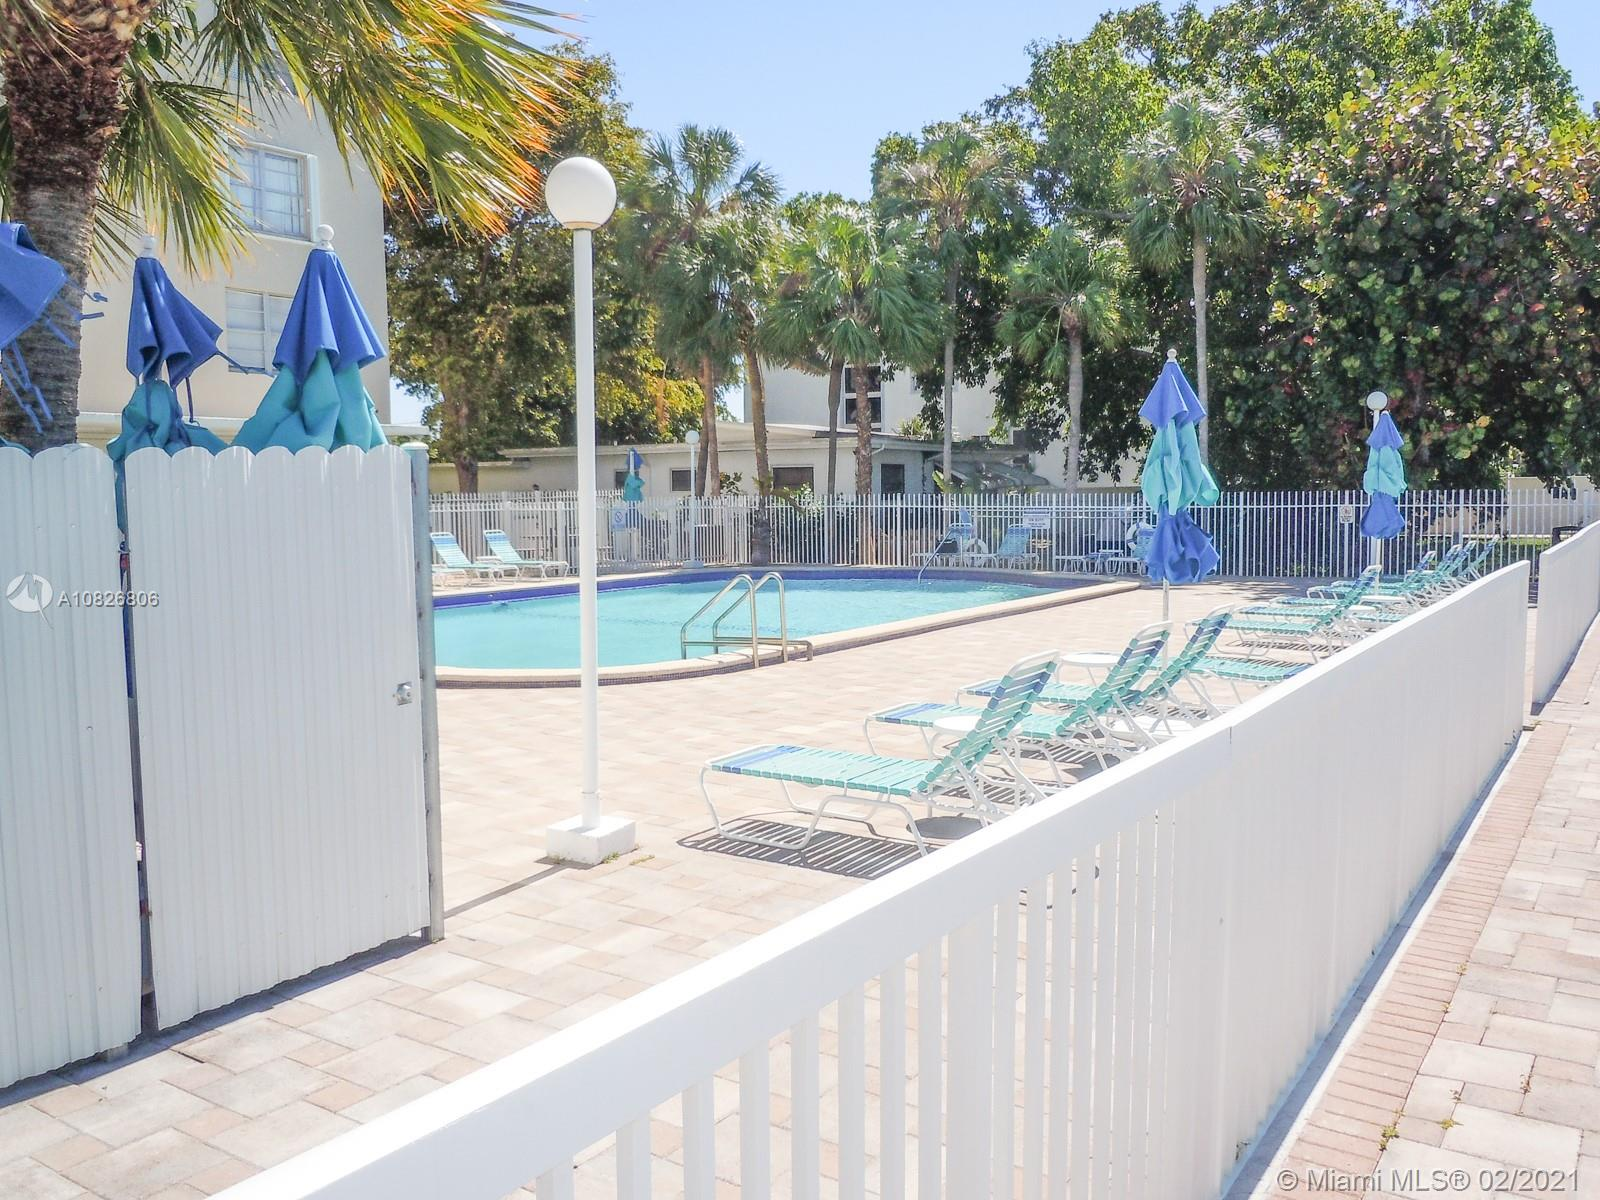 Island Place, 1455 N Treasure Dr Unit 7 D, North Bay Village, Florida 33141, image 45